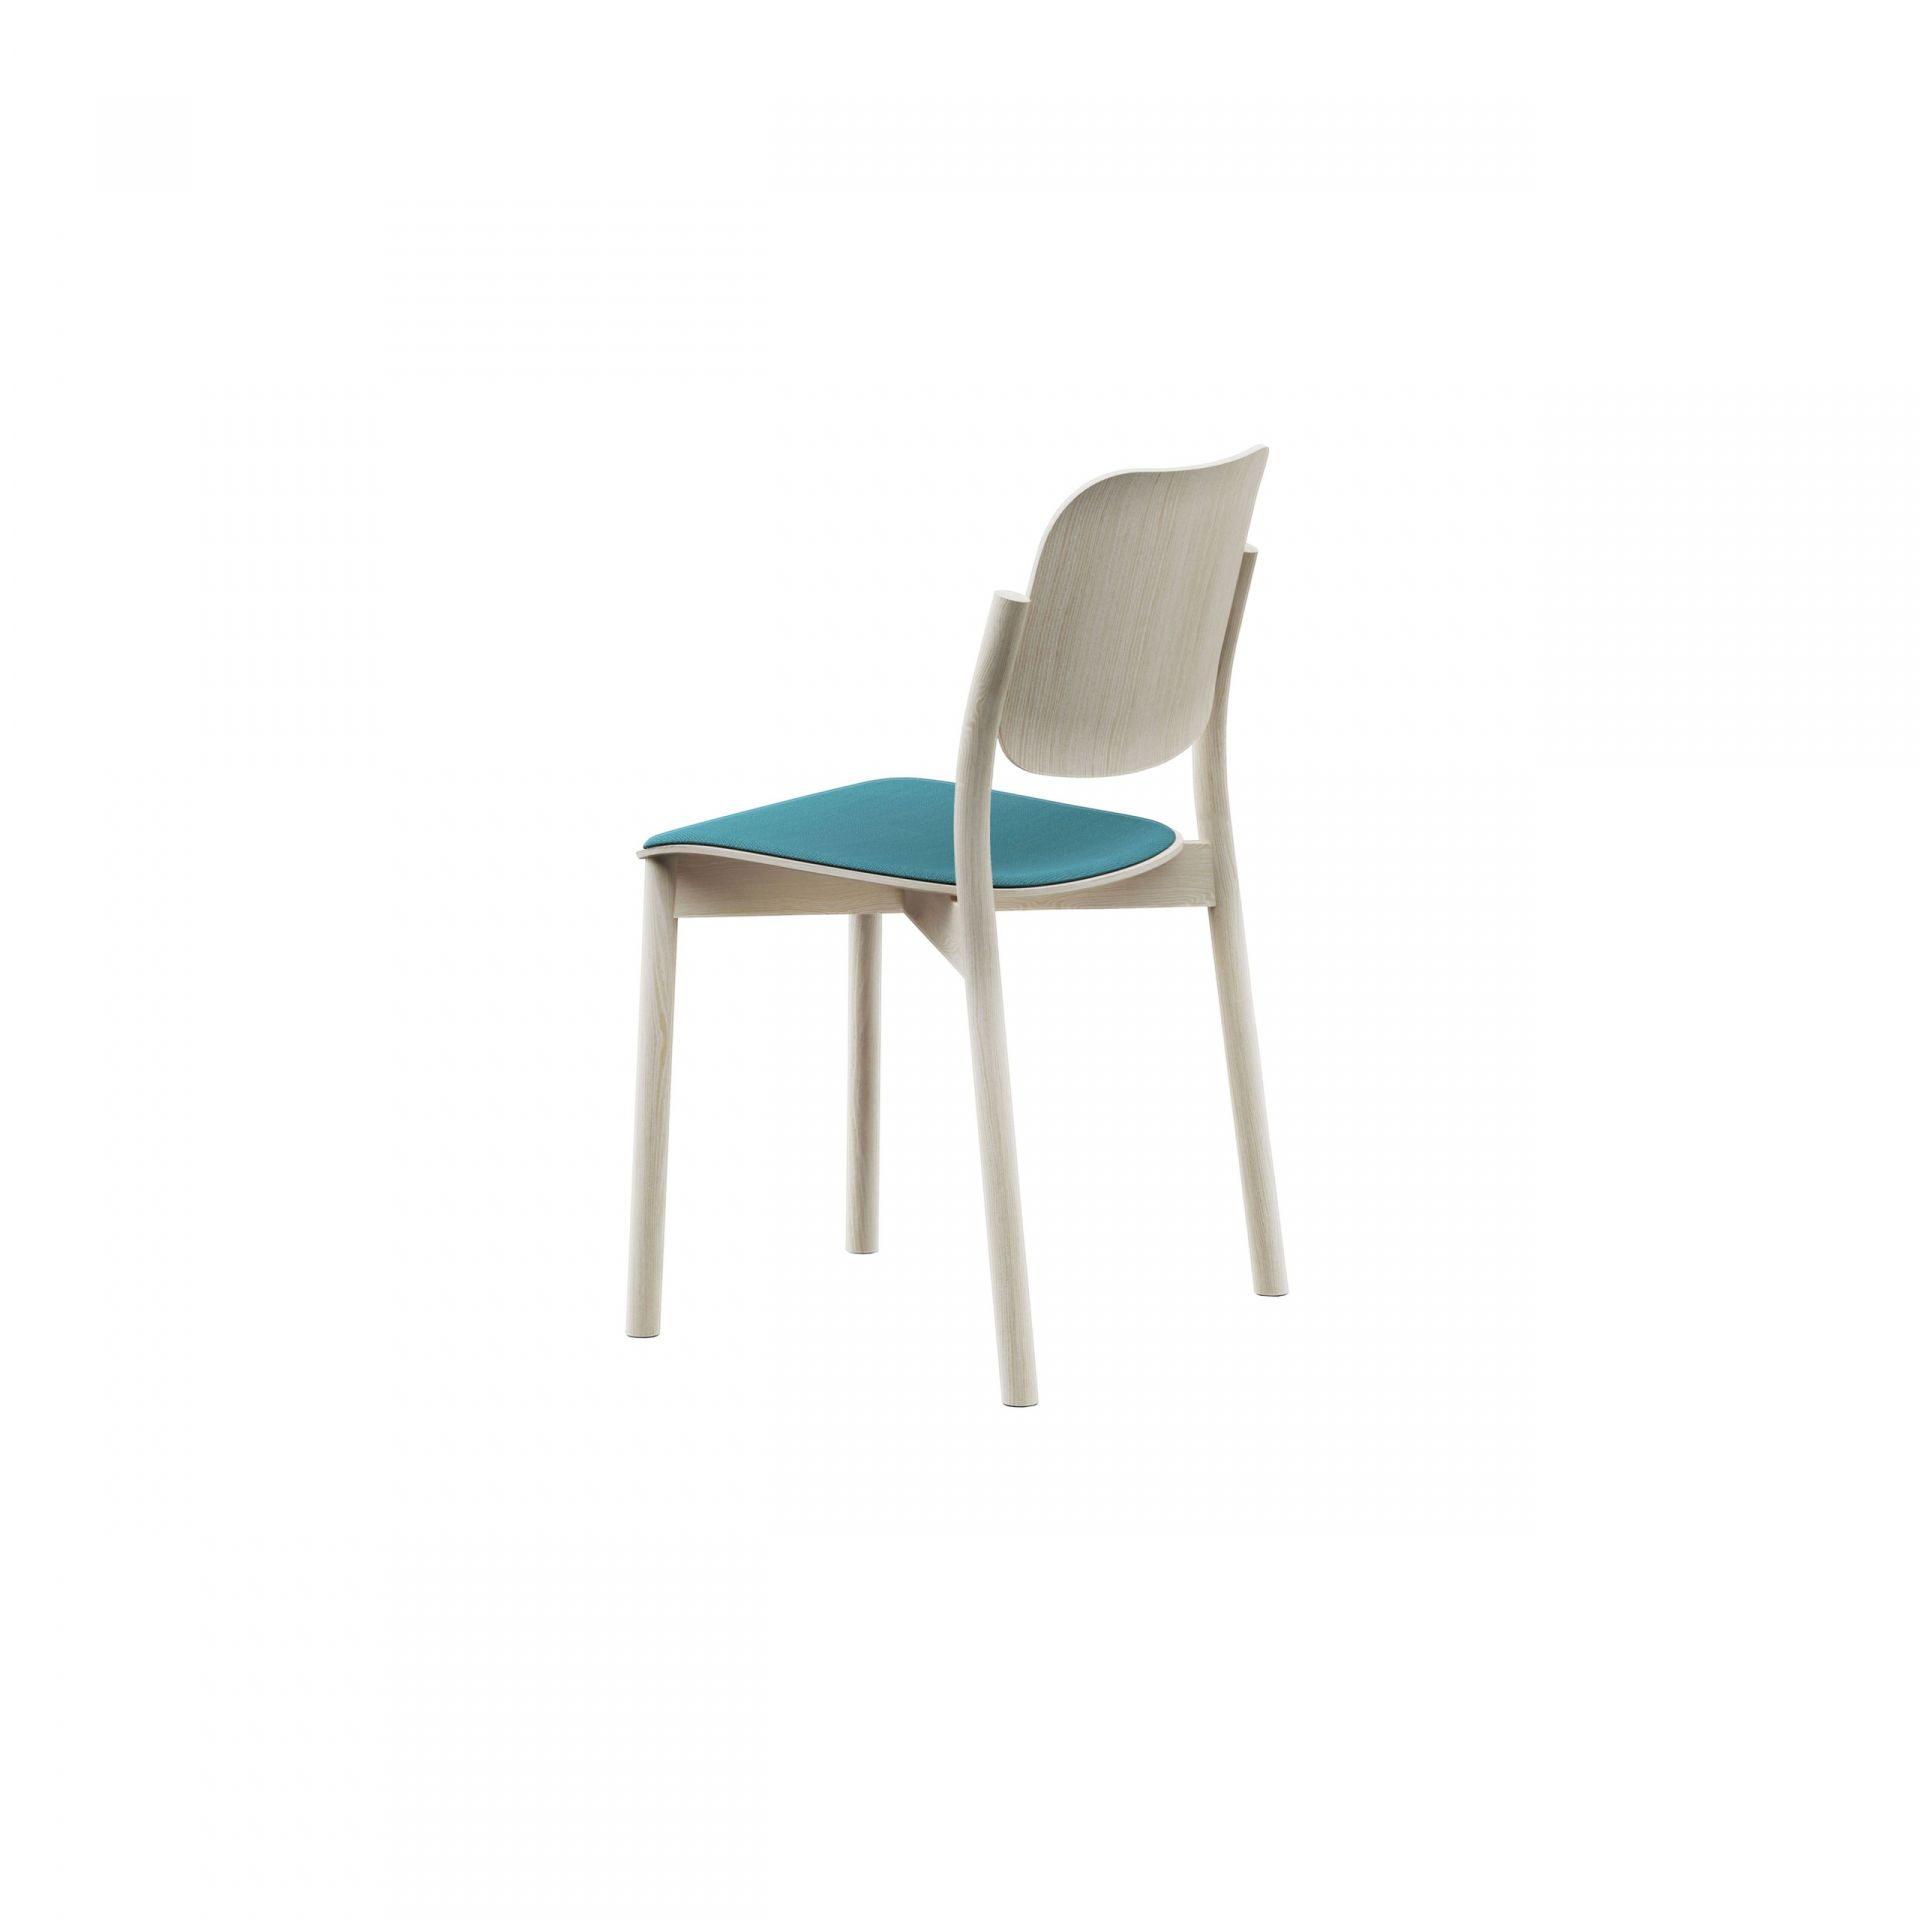 Zoe Wooden chair product image 6